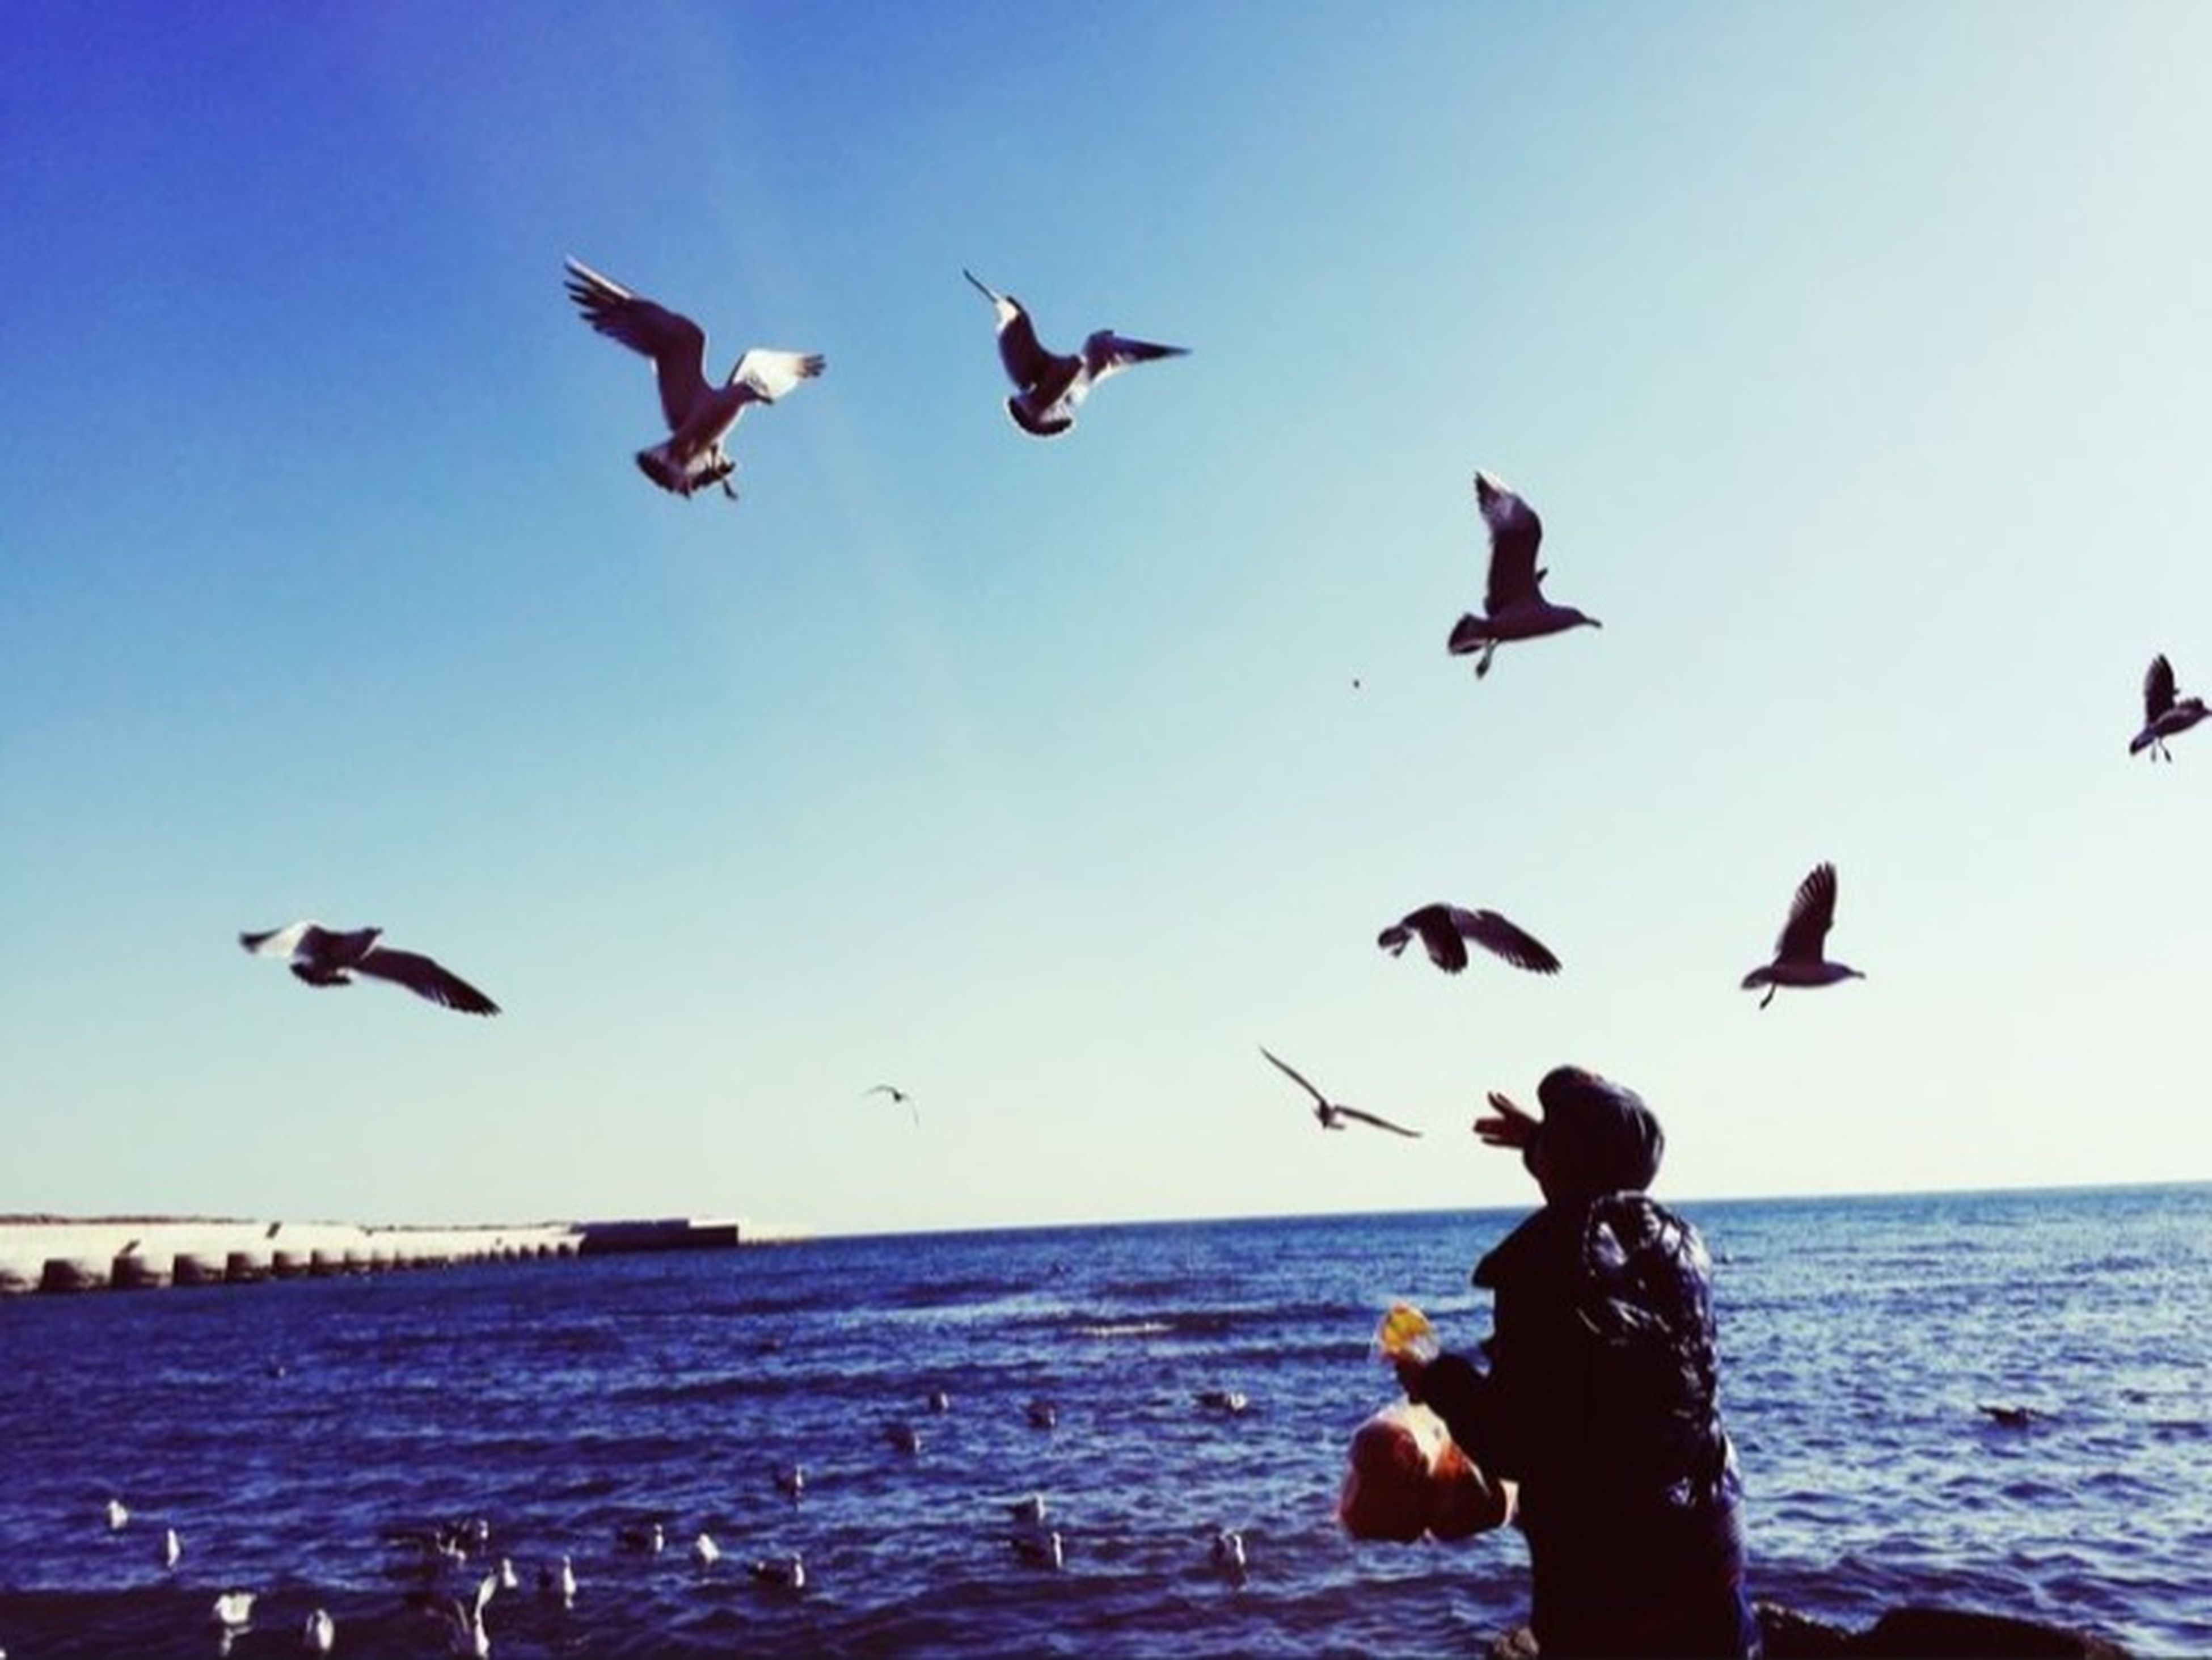 bird, animals in the wild, sea, animal themes, horizon over water, water, wildlife, seagull, flying, flock of birds, blue, beach, clear sky, sky, spread wings, shore, medium group of animals, nature, togetherness